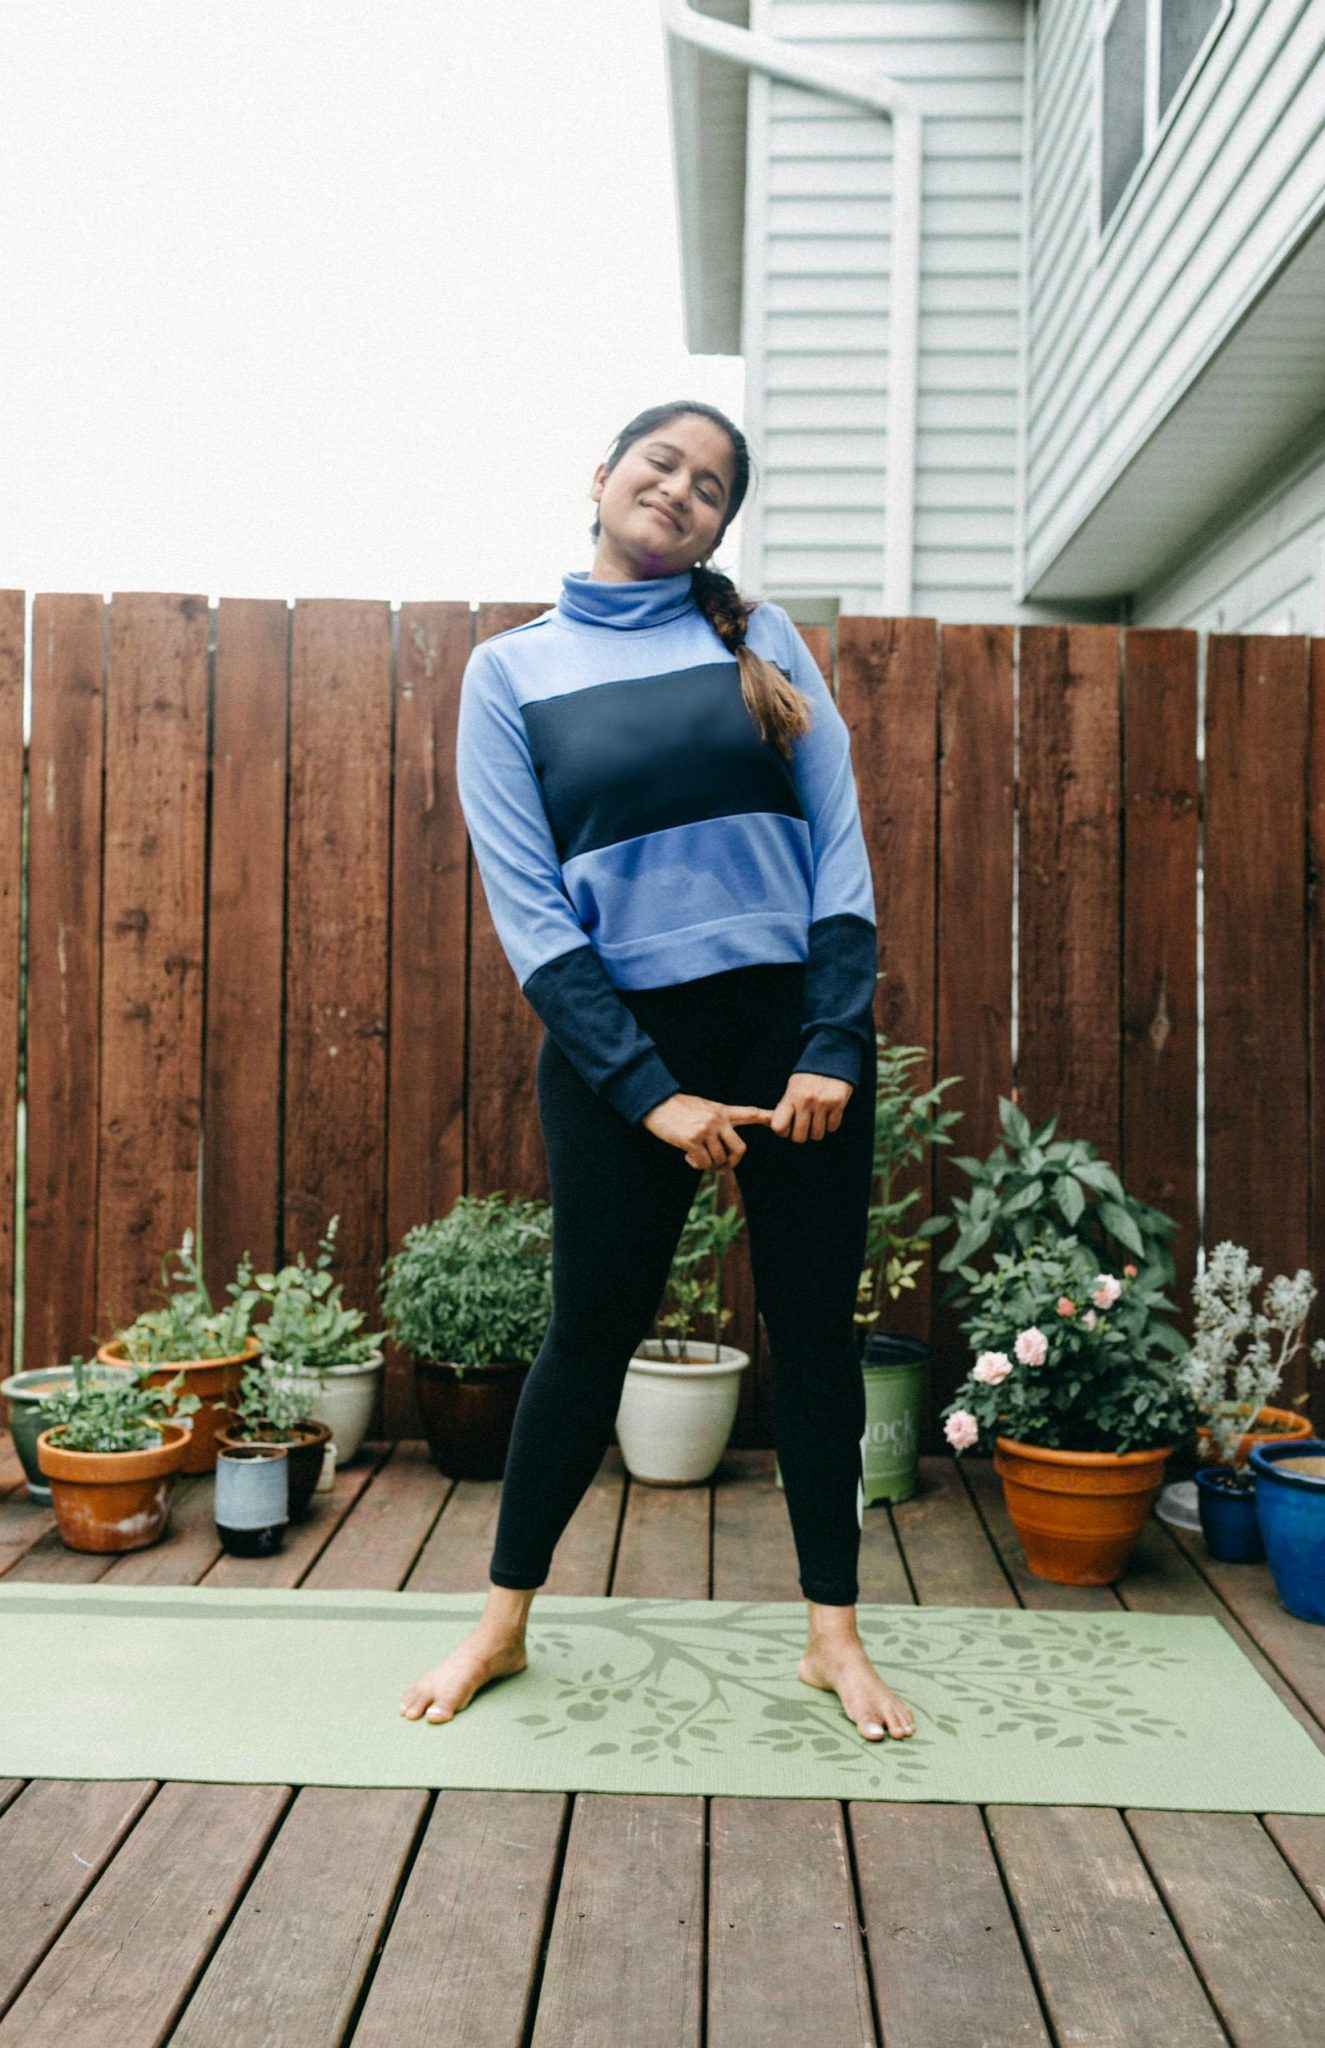 Wearing adidas Sport 2 Street Mock Neck Sweatshirt in Lilac from Kohls 1 | Adidas Yoga Clothing featured by Ohio modest fashion blogger, Dreaming Loud